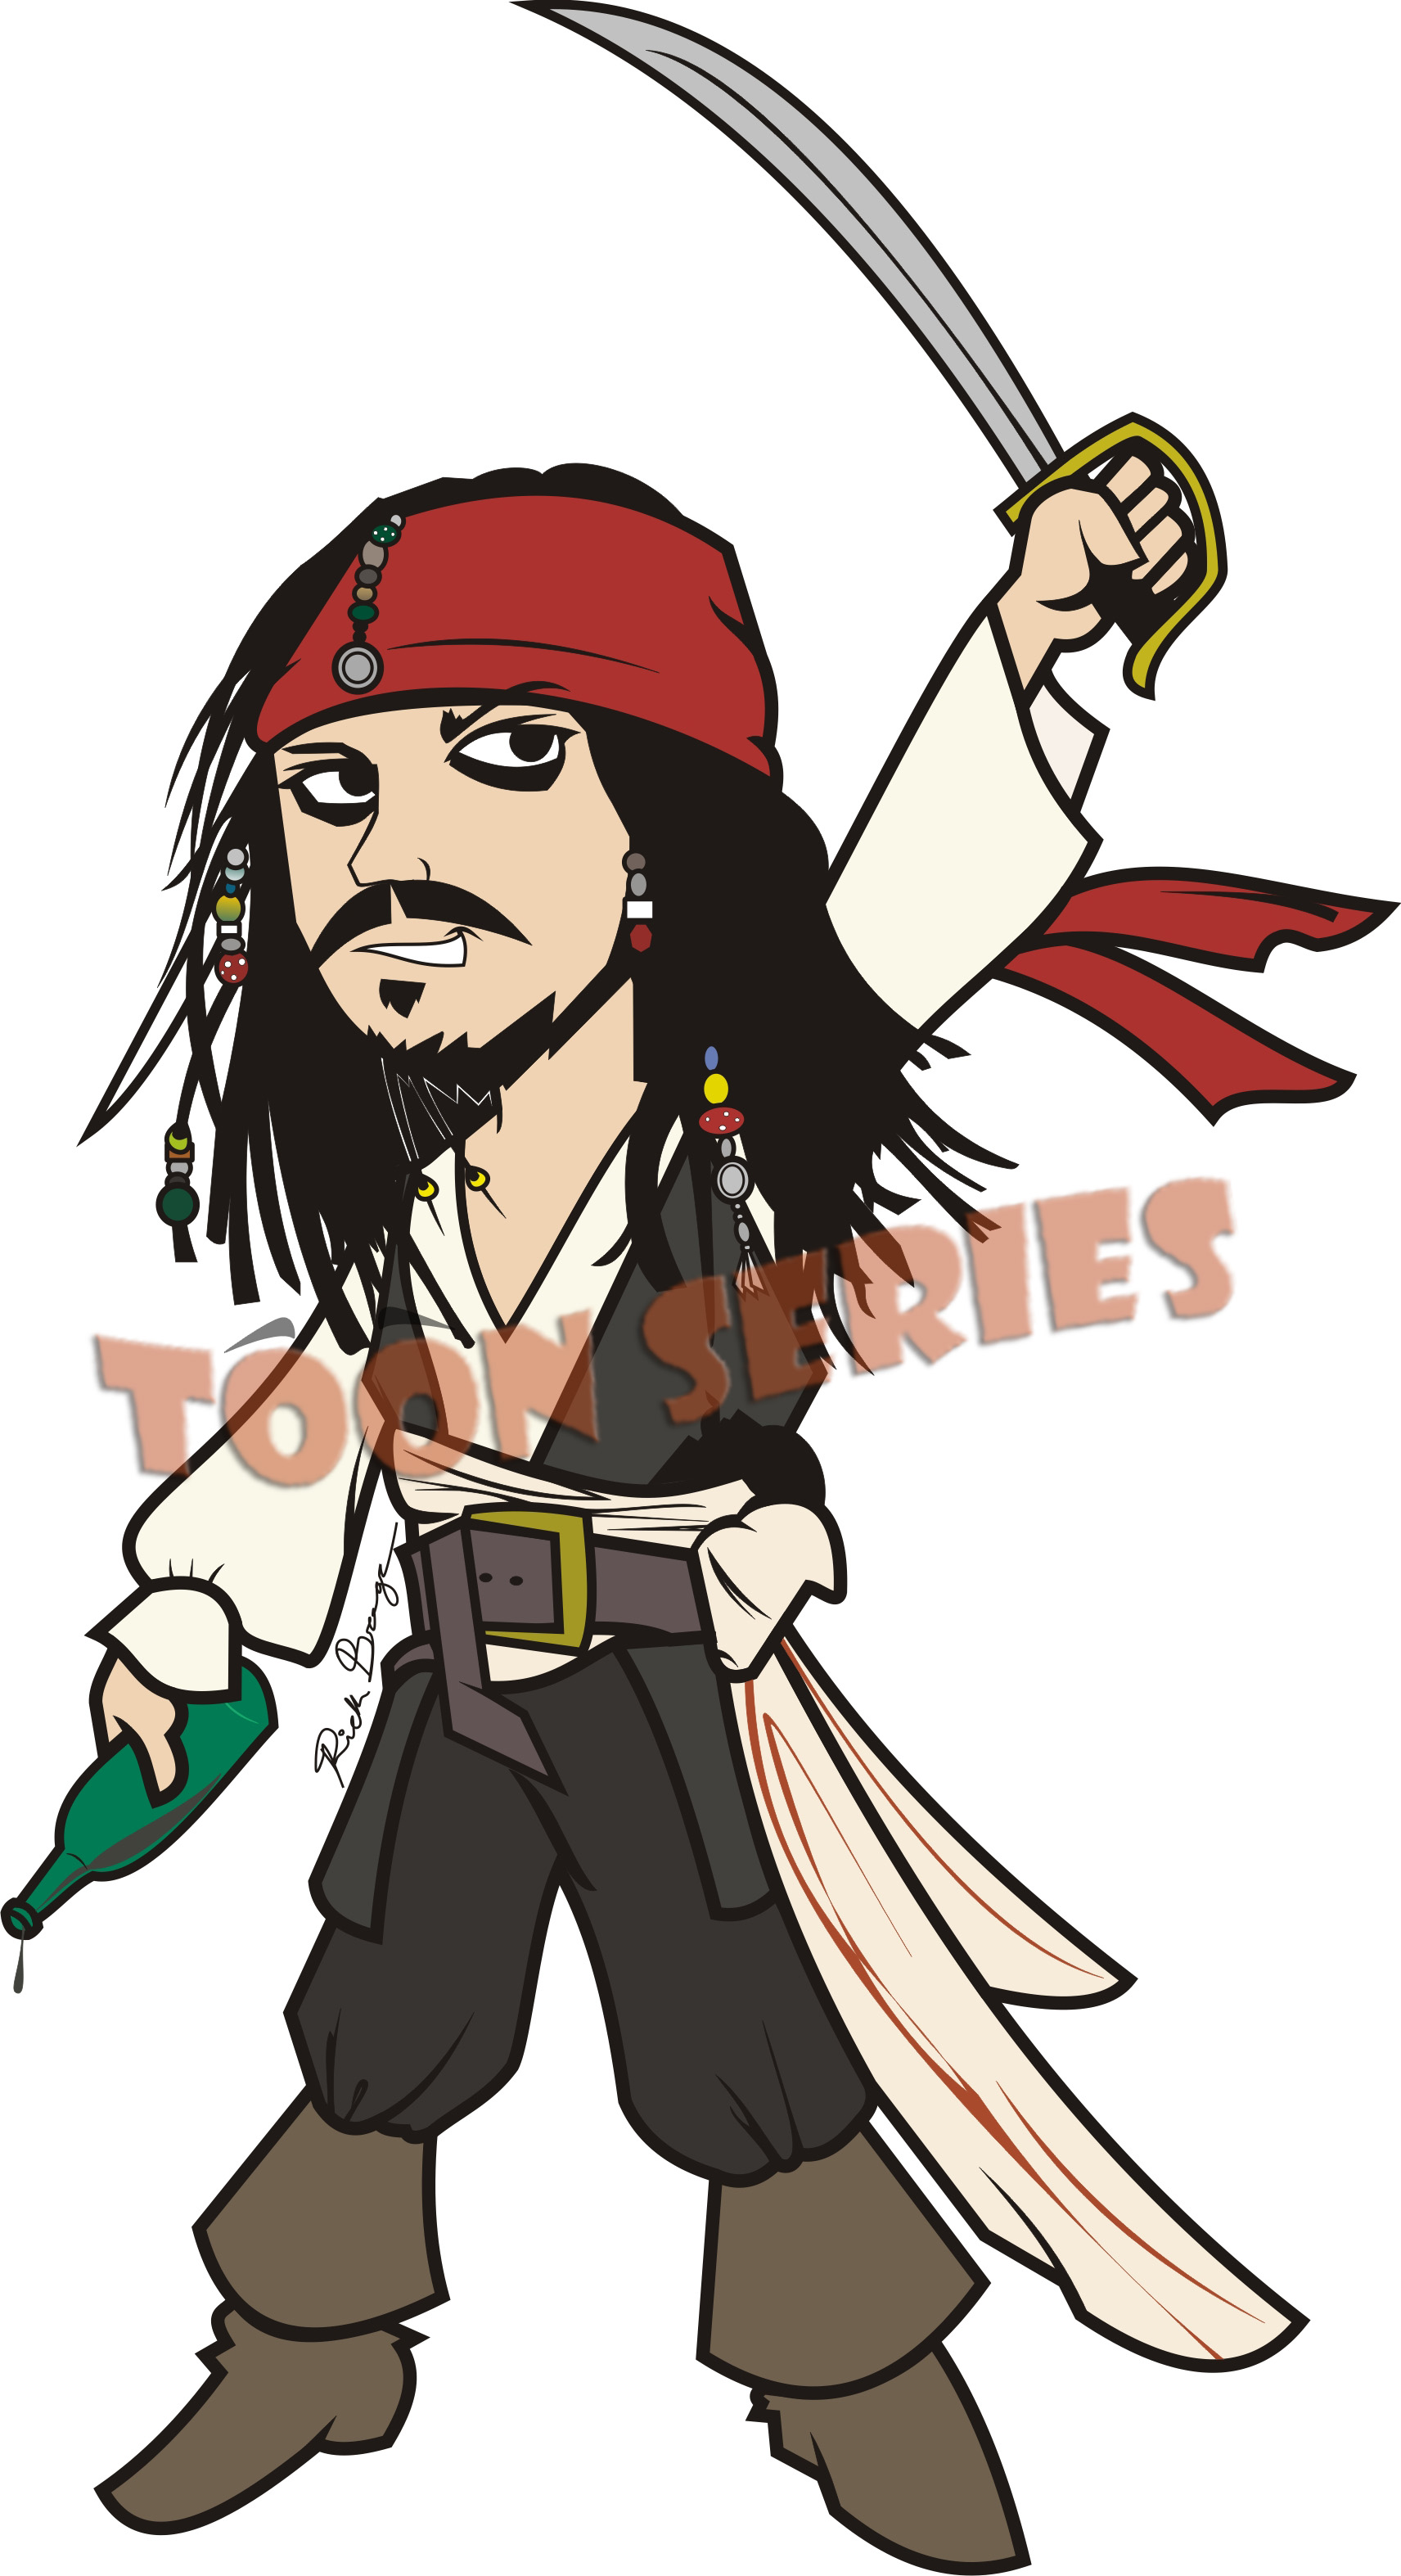 Captain Jack Sparrow by toonseries on DeviantArt